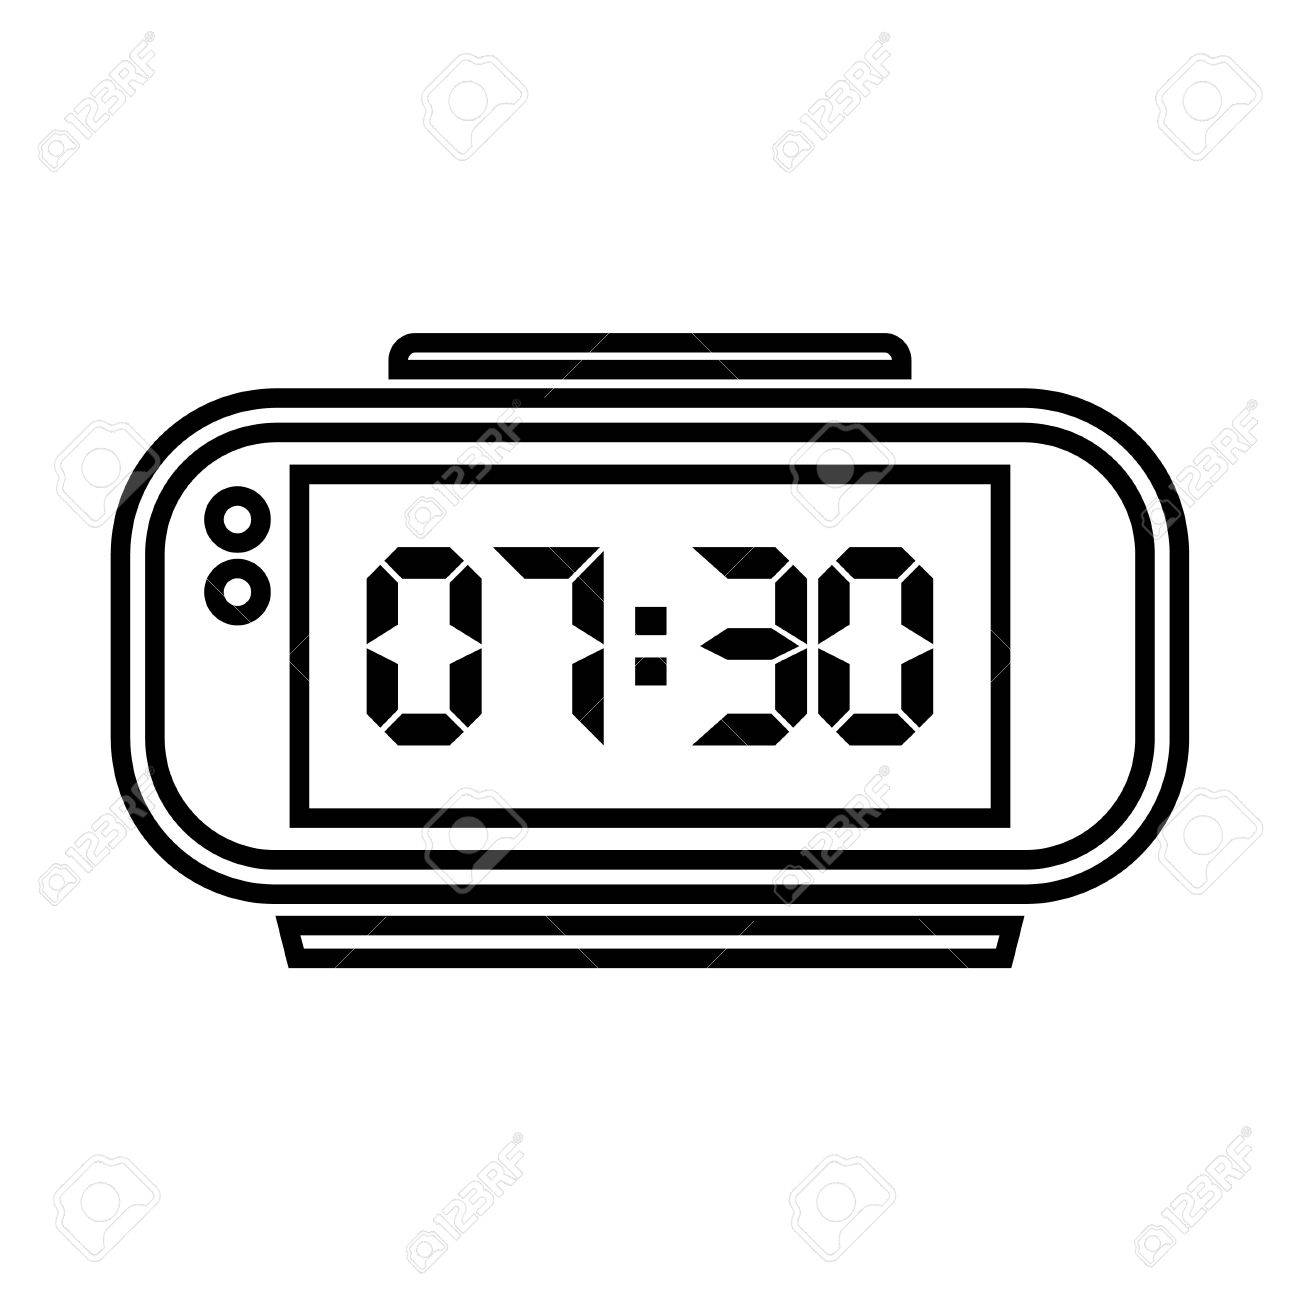 Digital Alarm Clock Vector Illustration On White Background Stock